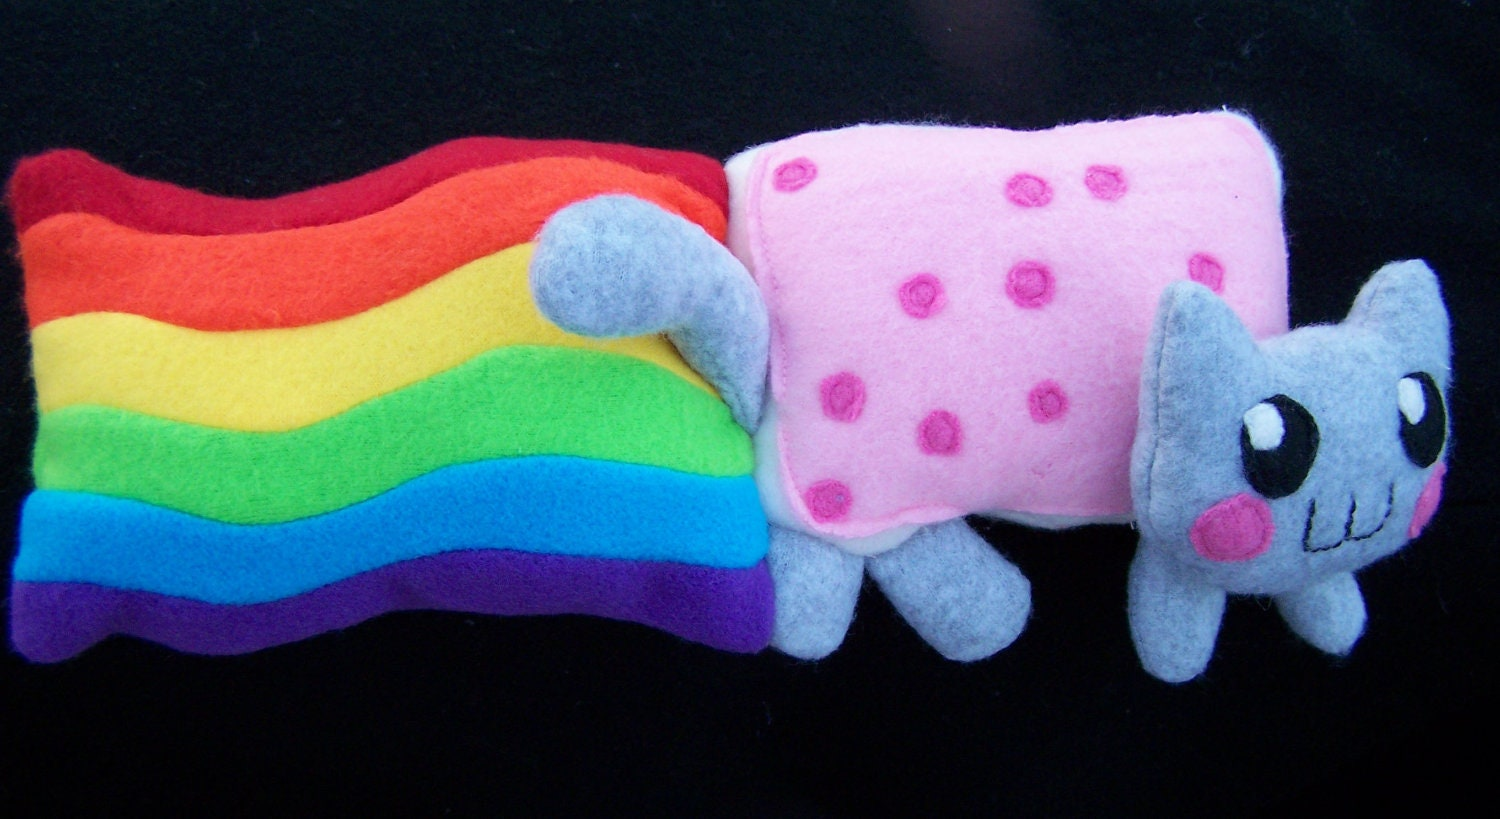 Nyan cat plush toy by ironorchidcreations on etsy